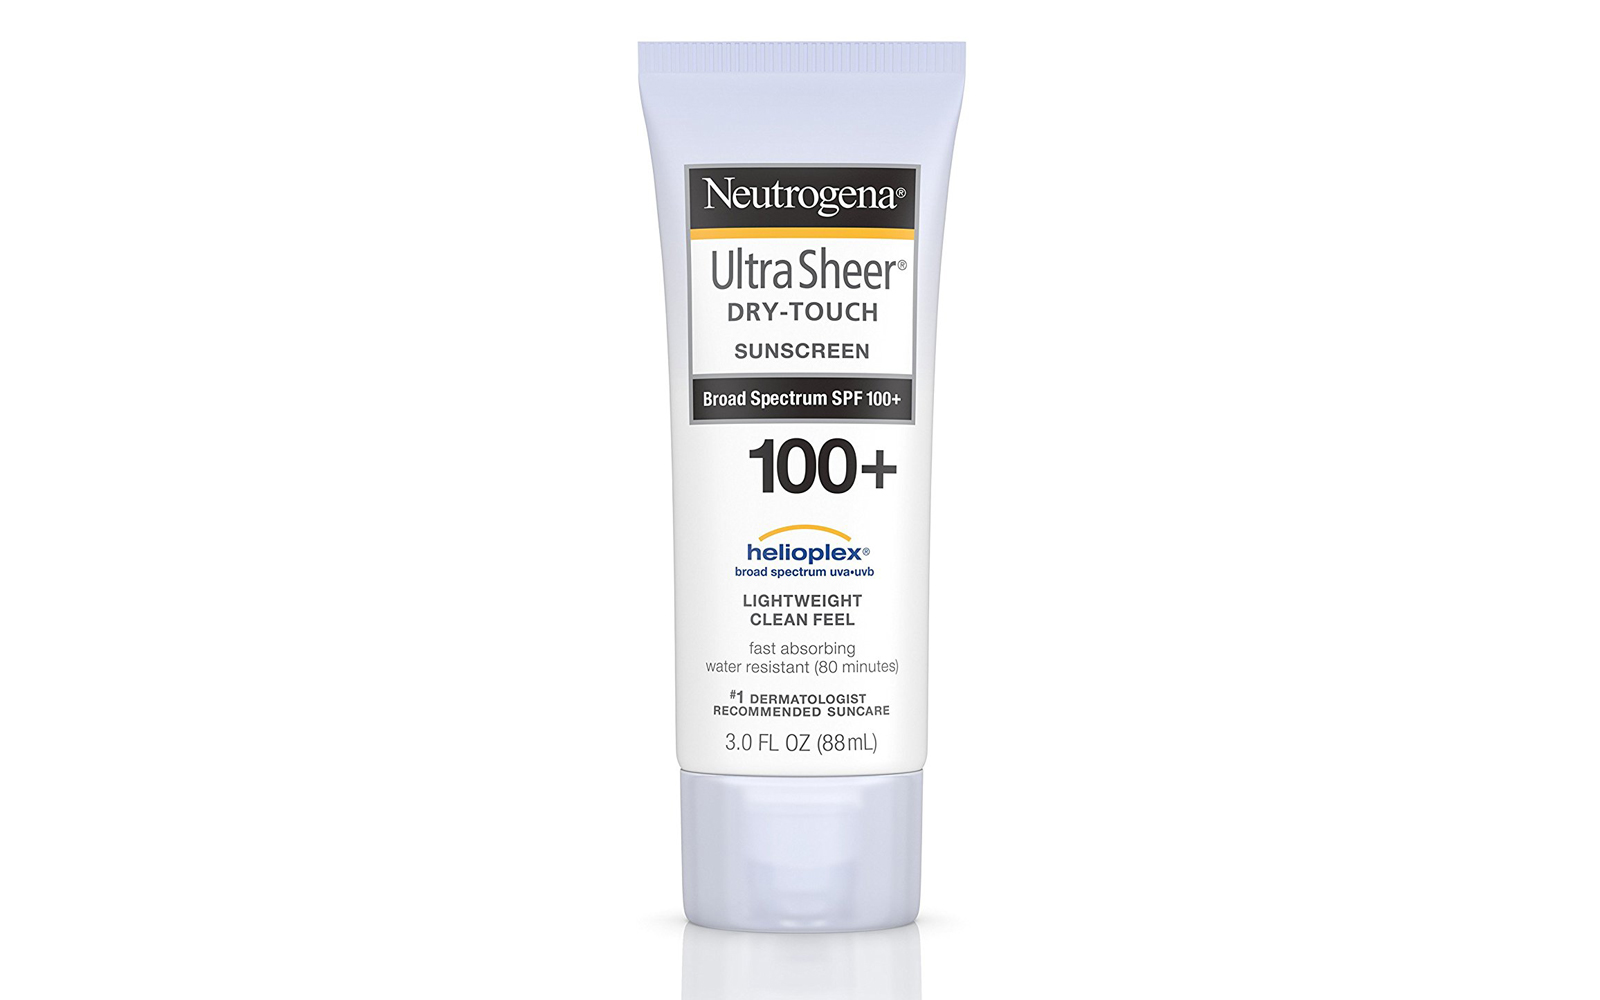 Neutrogena Ultra Sheer SPF 100